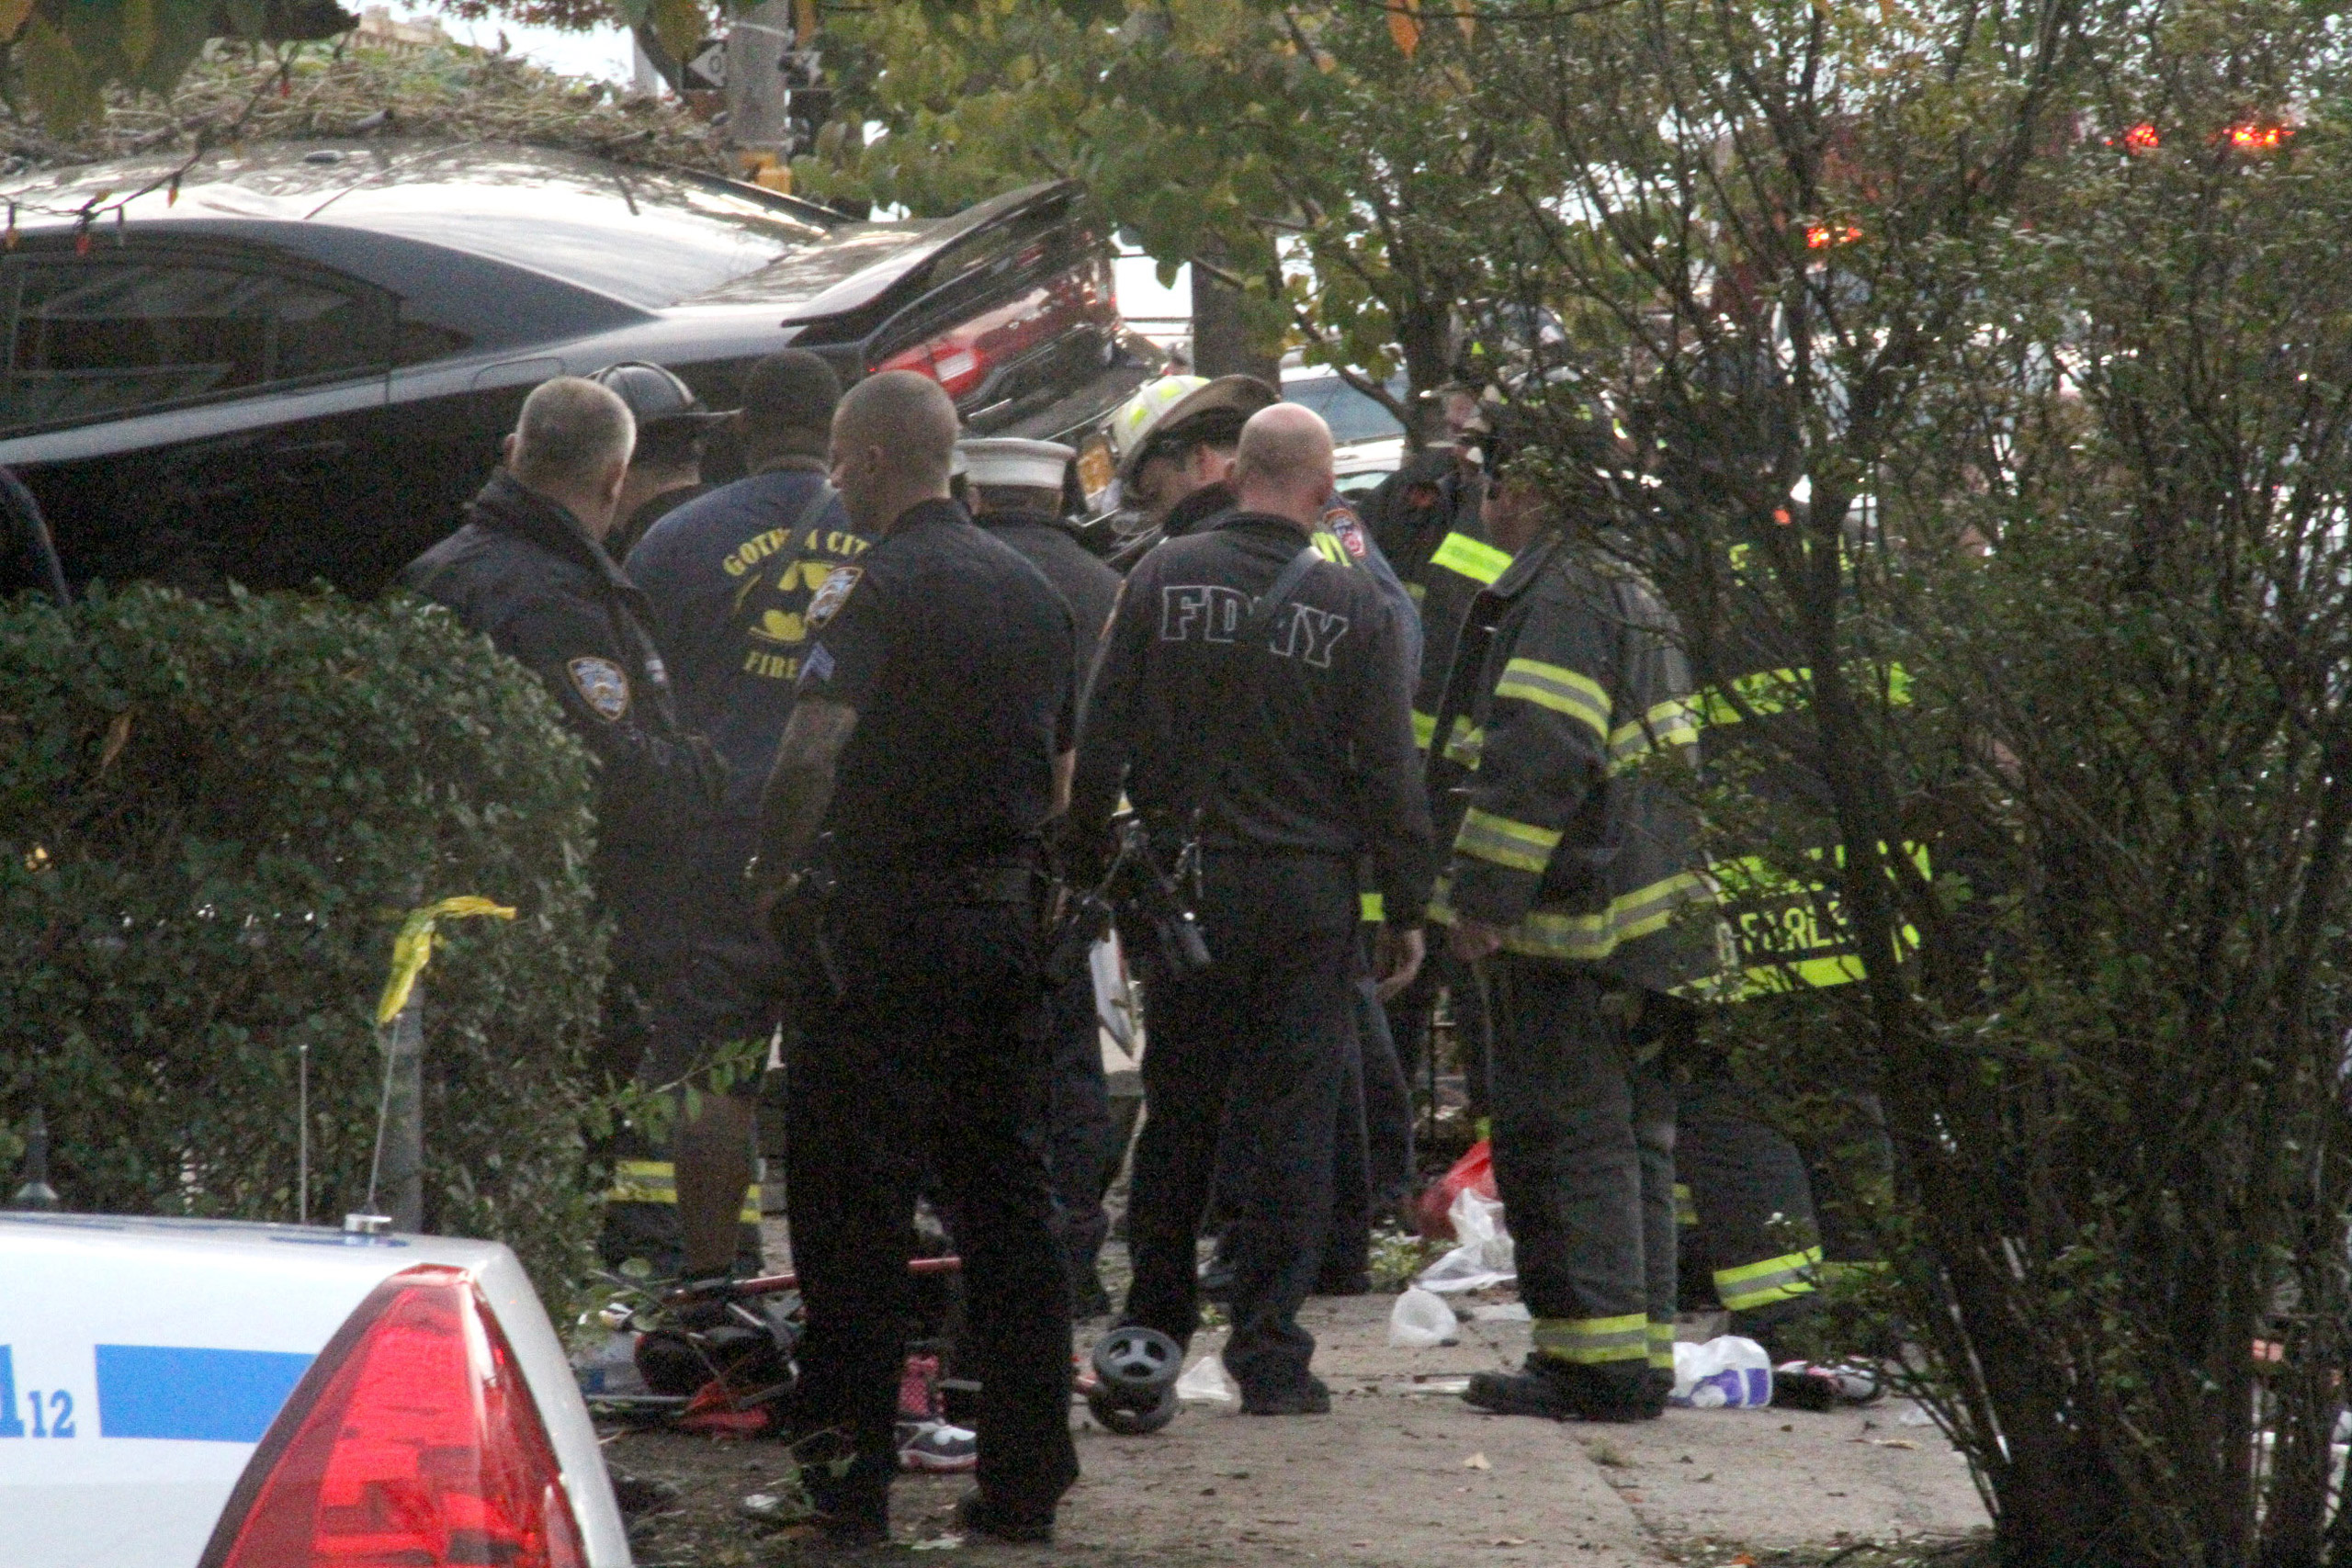 First responders examine an automobile after its driver lost control and plowed into a group of trick-or-treaters, killing three people and injuring several, in the Bronx, N.Y., on Oct. 31, 2015.